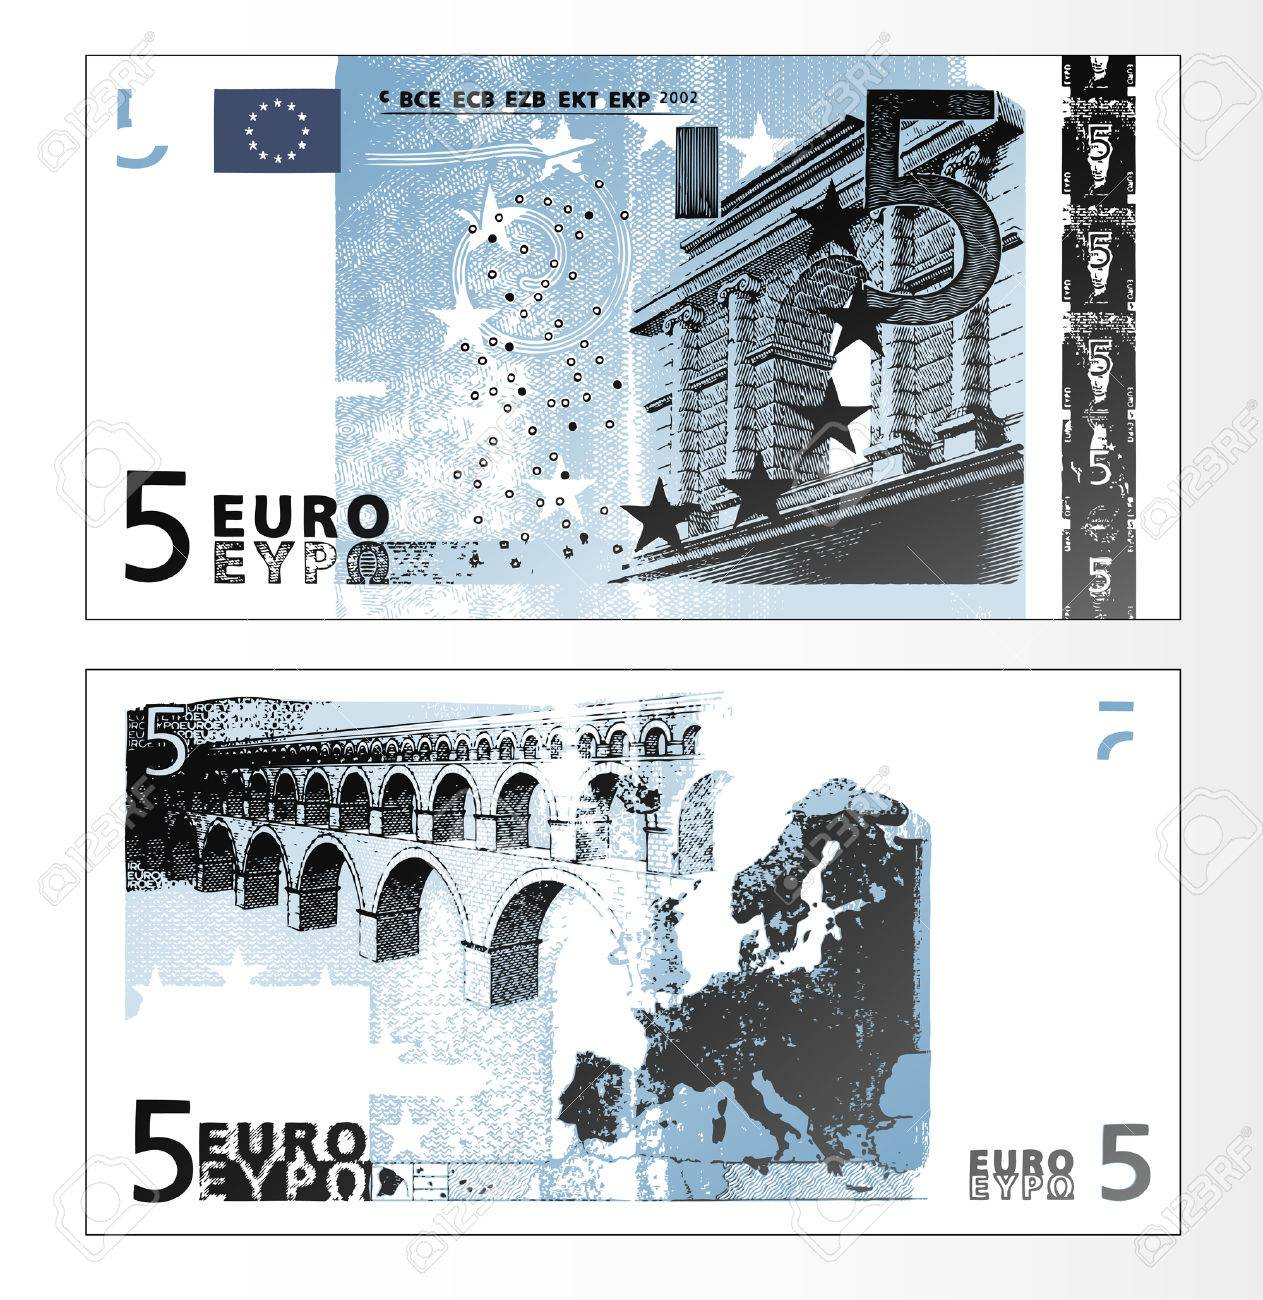 Vector illustration of a cleaned trace layered double sided European Union banknote of 5 Euros. - 4045970